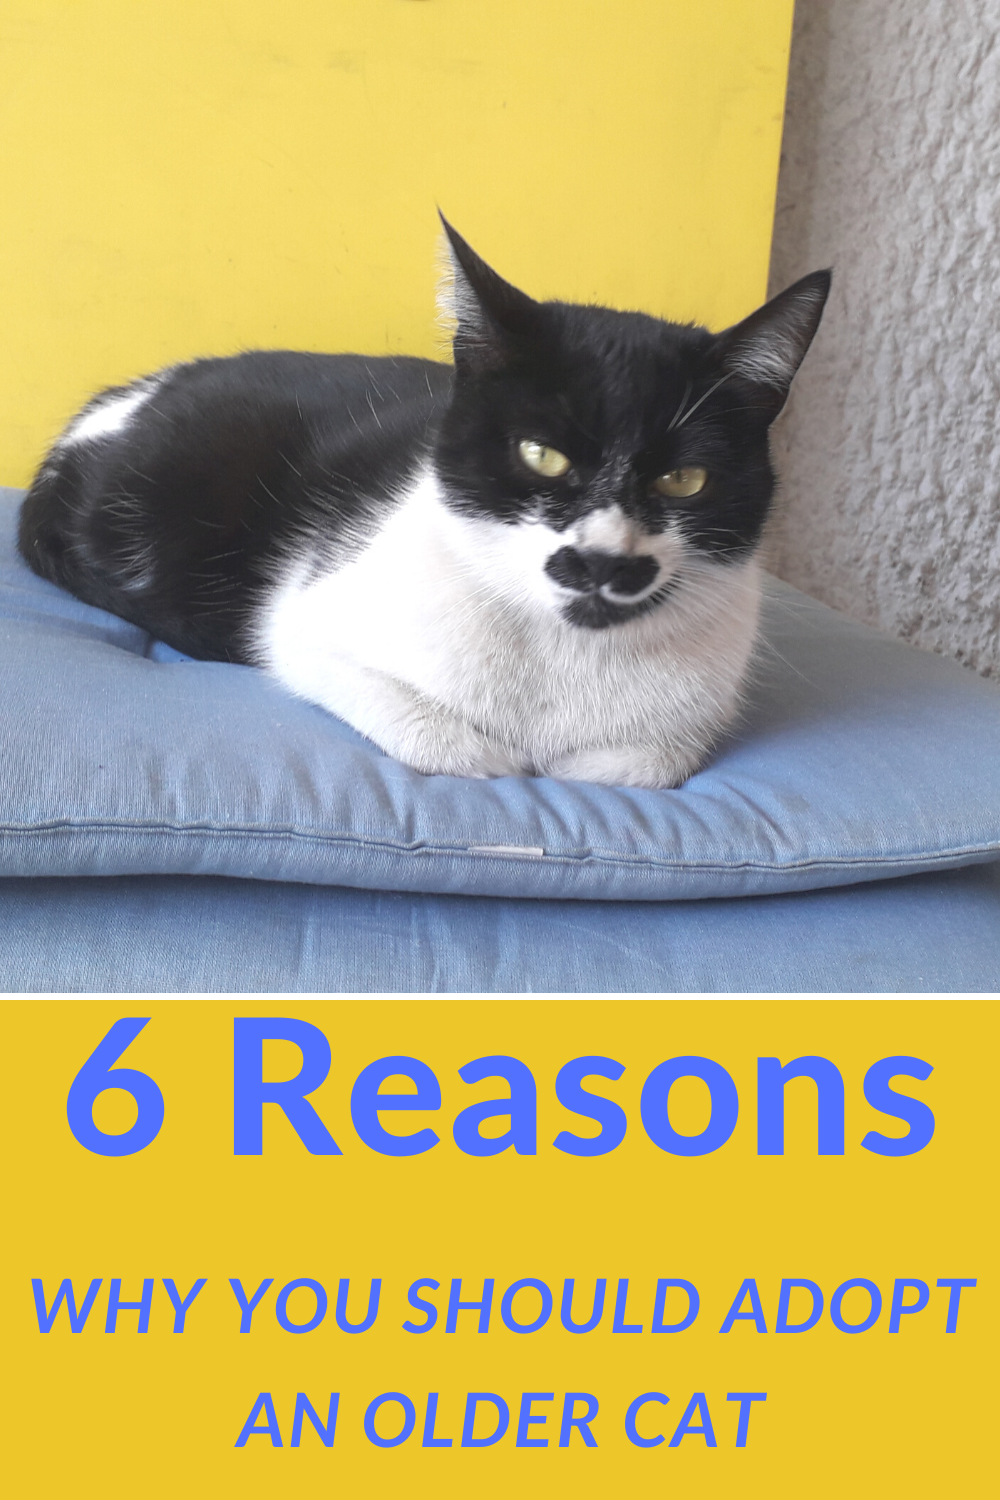 6 Reasons Why You Should Adopt an Older Cat in 2020 (With